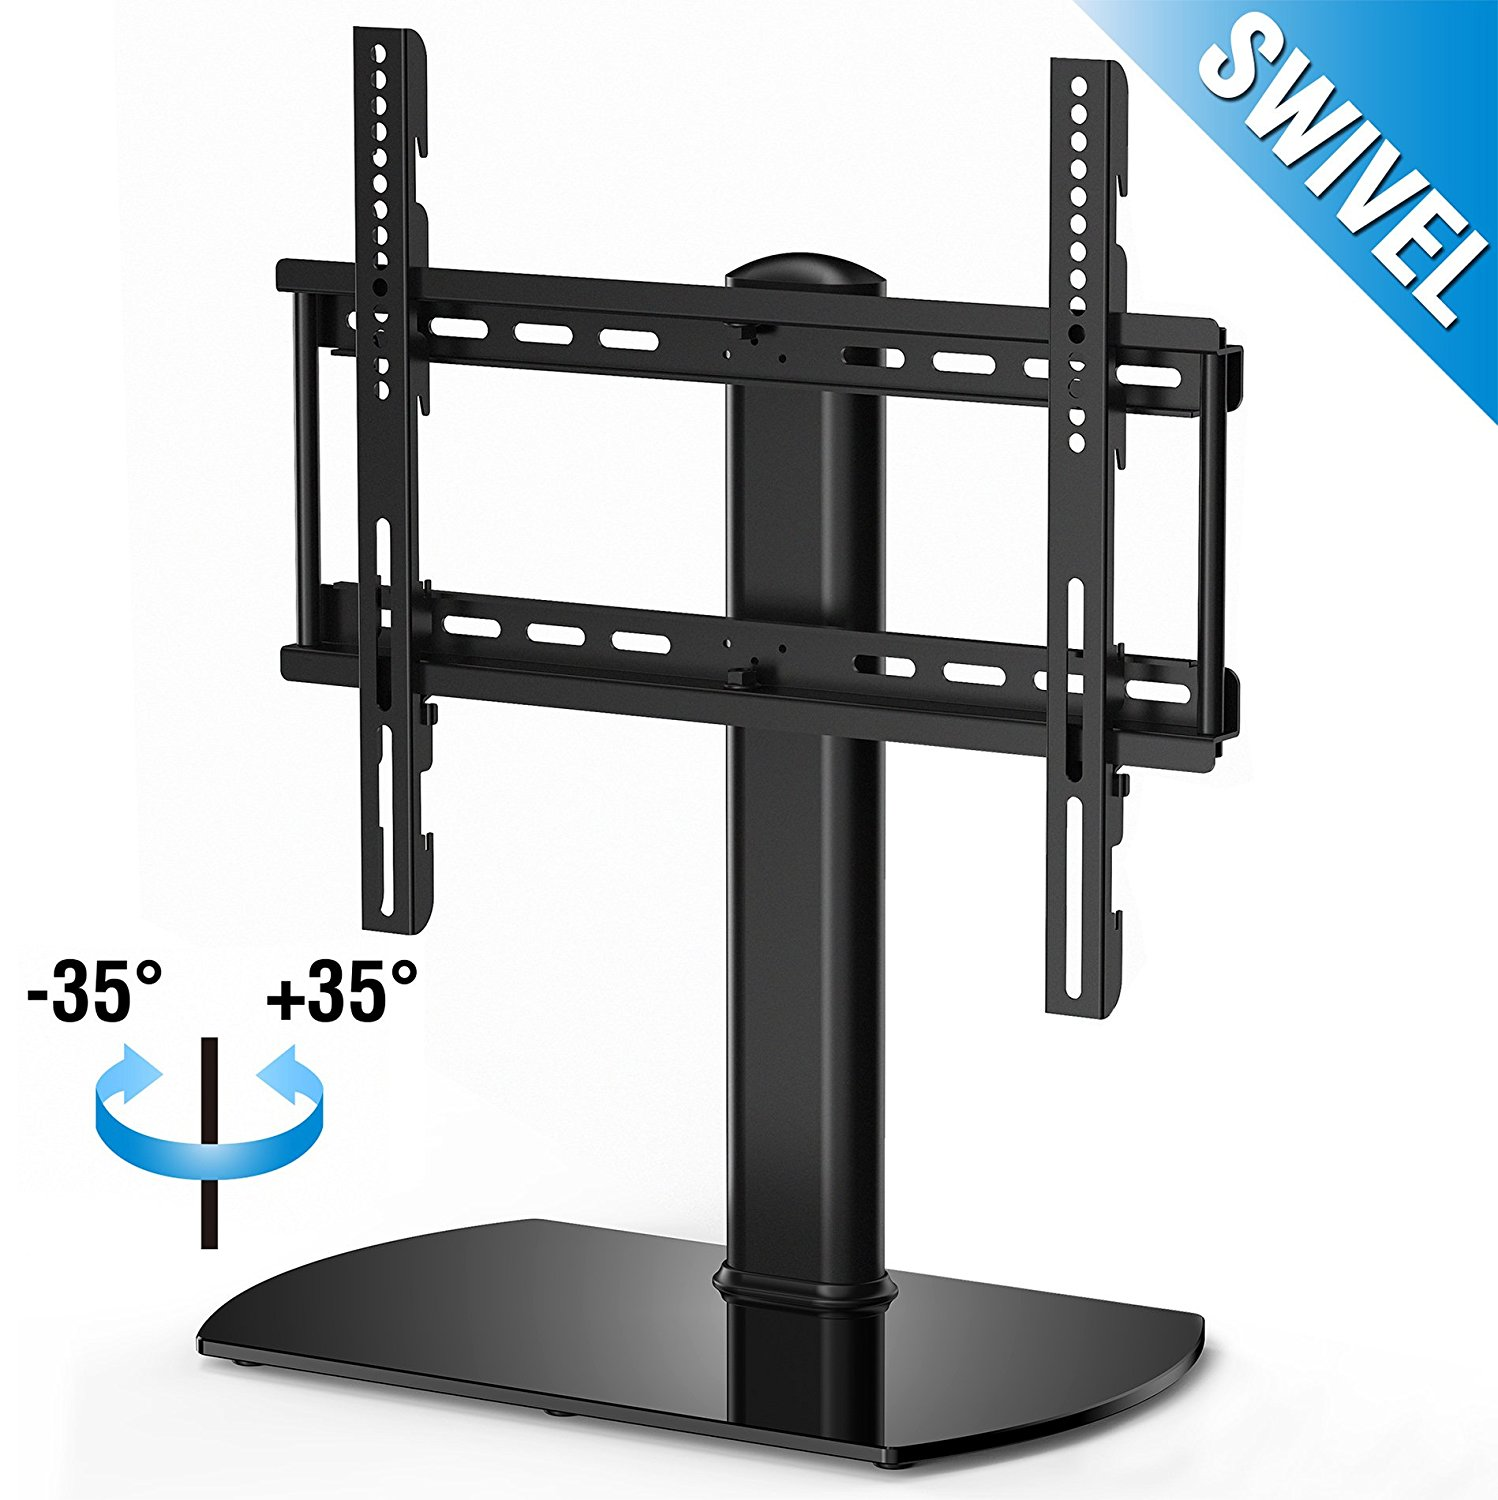 FITUEYES Tabletop TV Stand with Swivel Mount for 32 37 40 42 45 50 inch Tv TT104501GBF